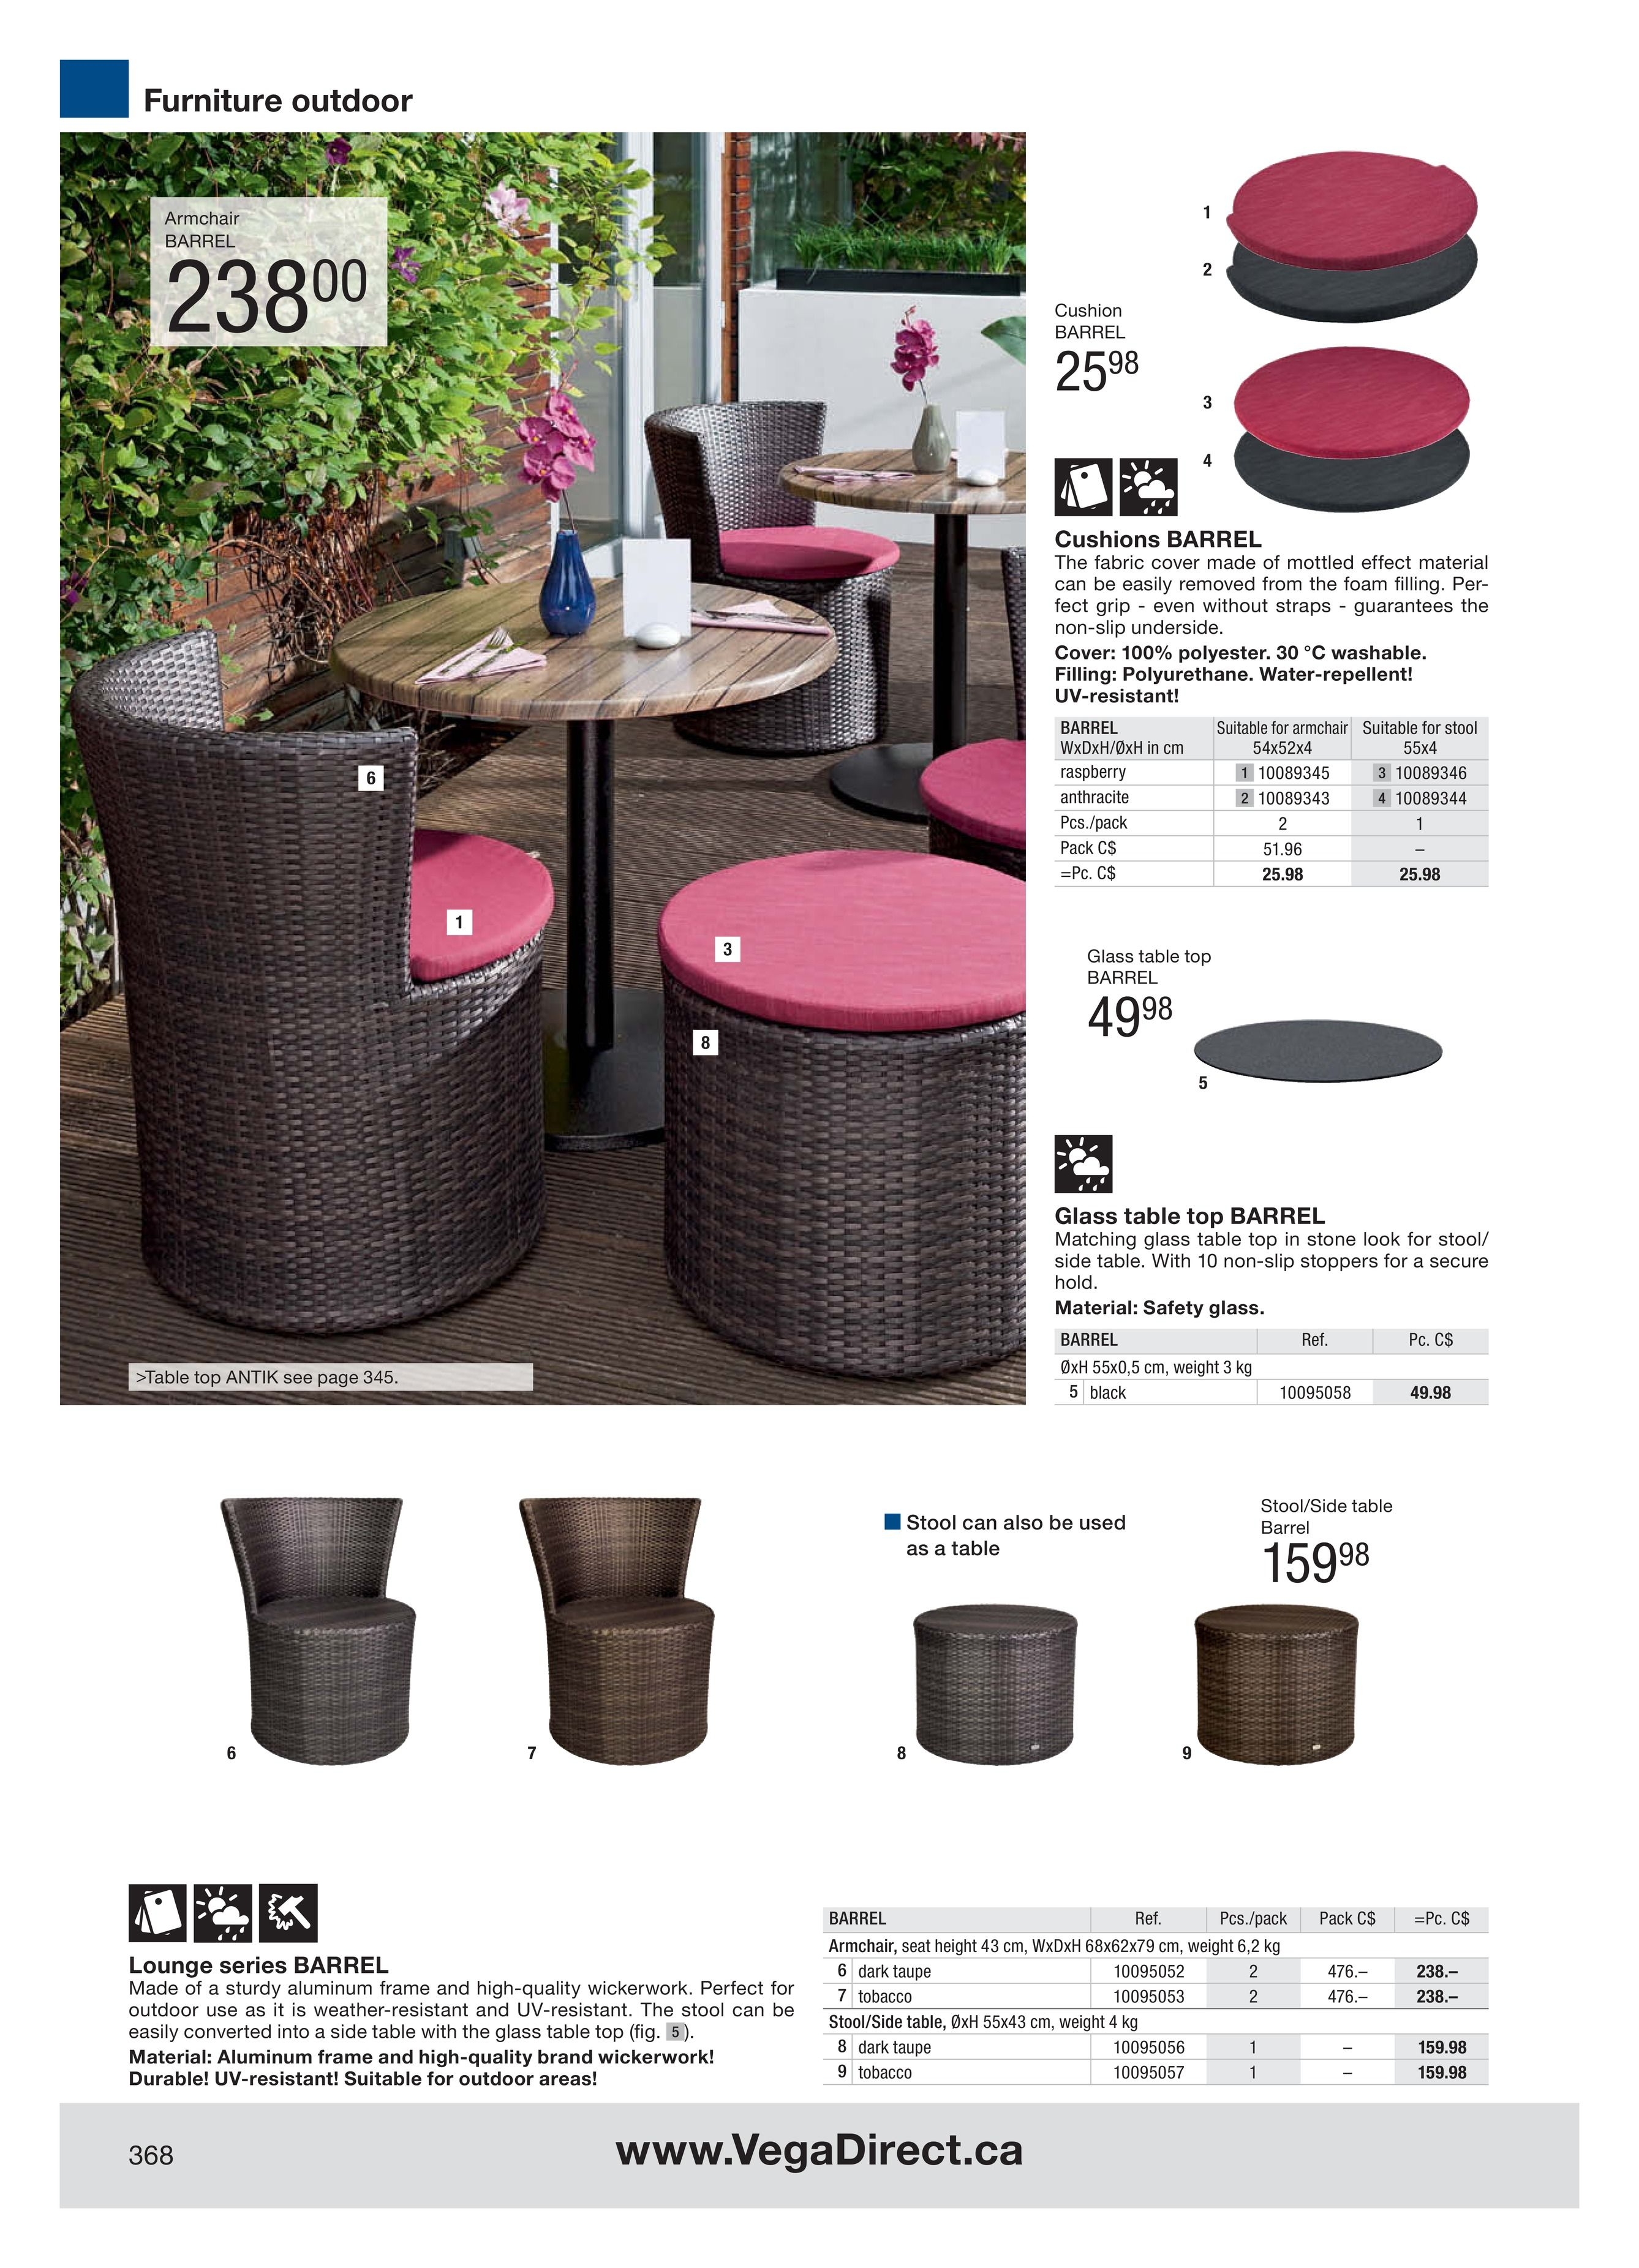 Category furniture outdoor page no 367